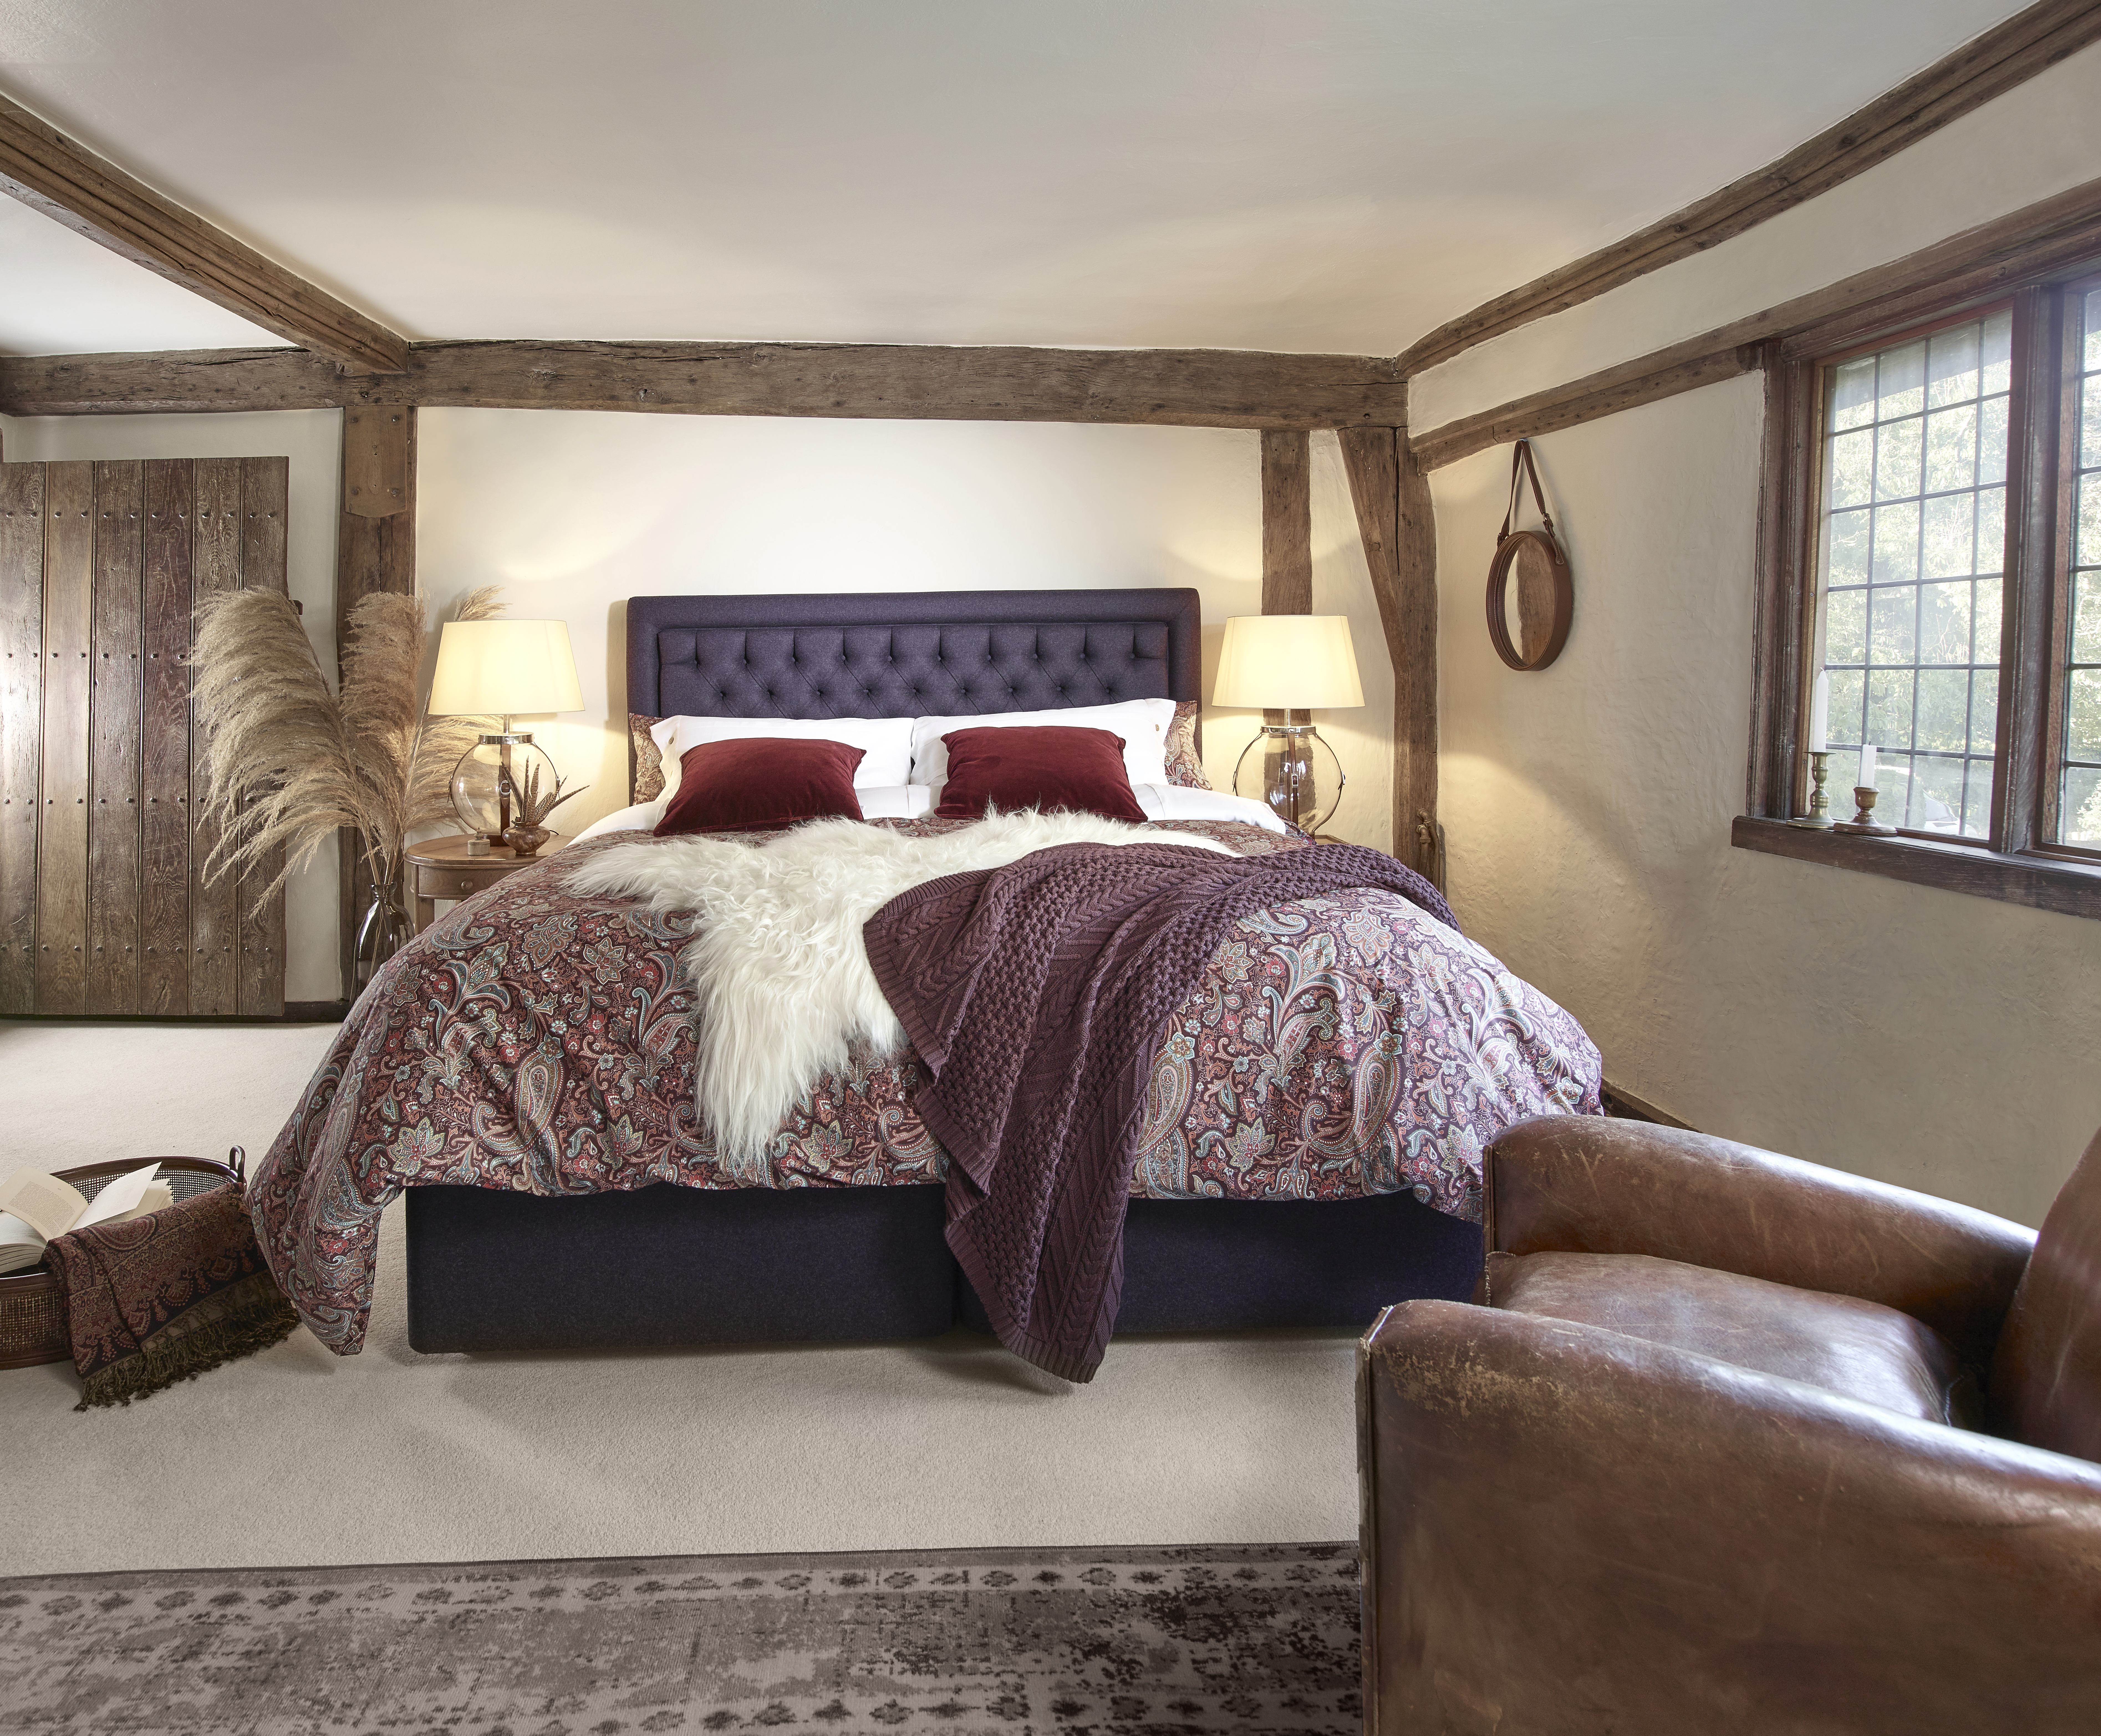 Beautiful Image of Adam Henson Camden bed range. Blue wool fabric headboard with deep red cushions and faux fur throw. Featured in a country style interior